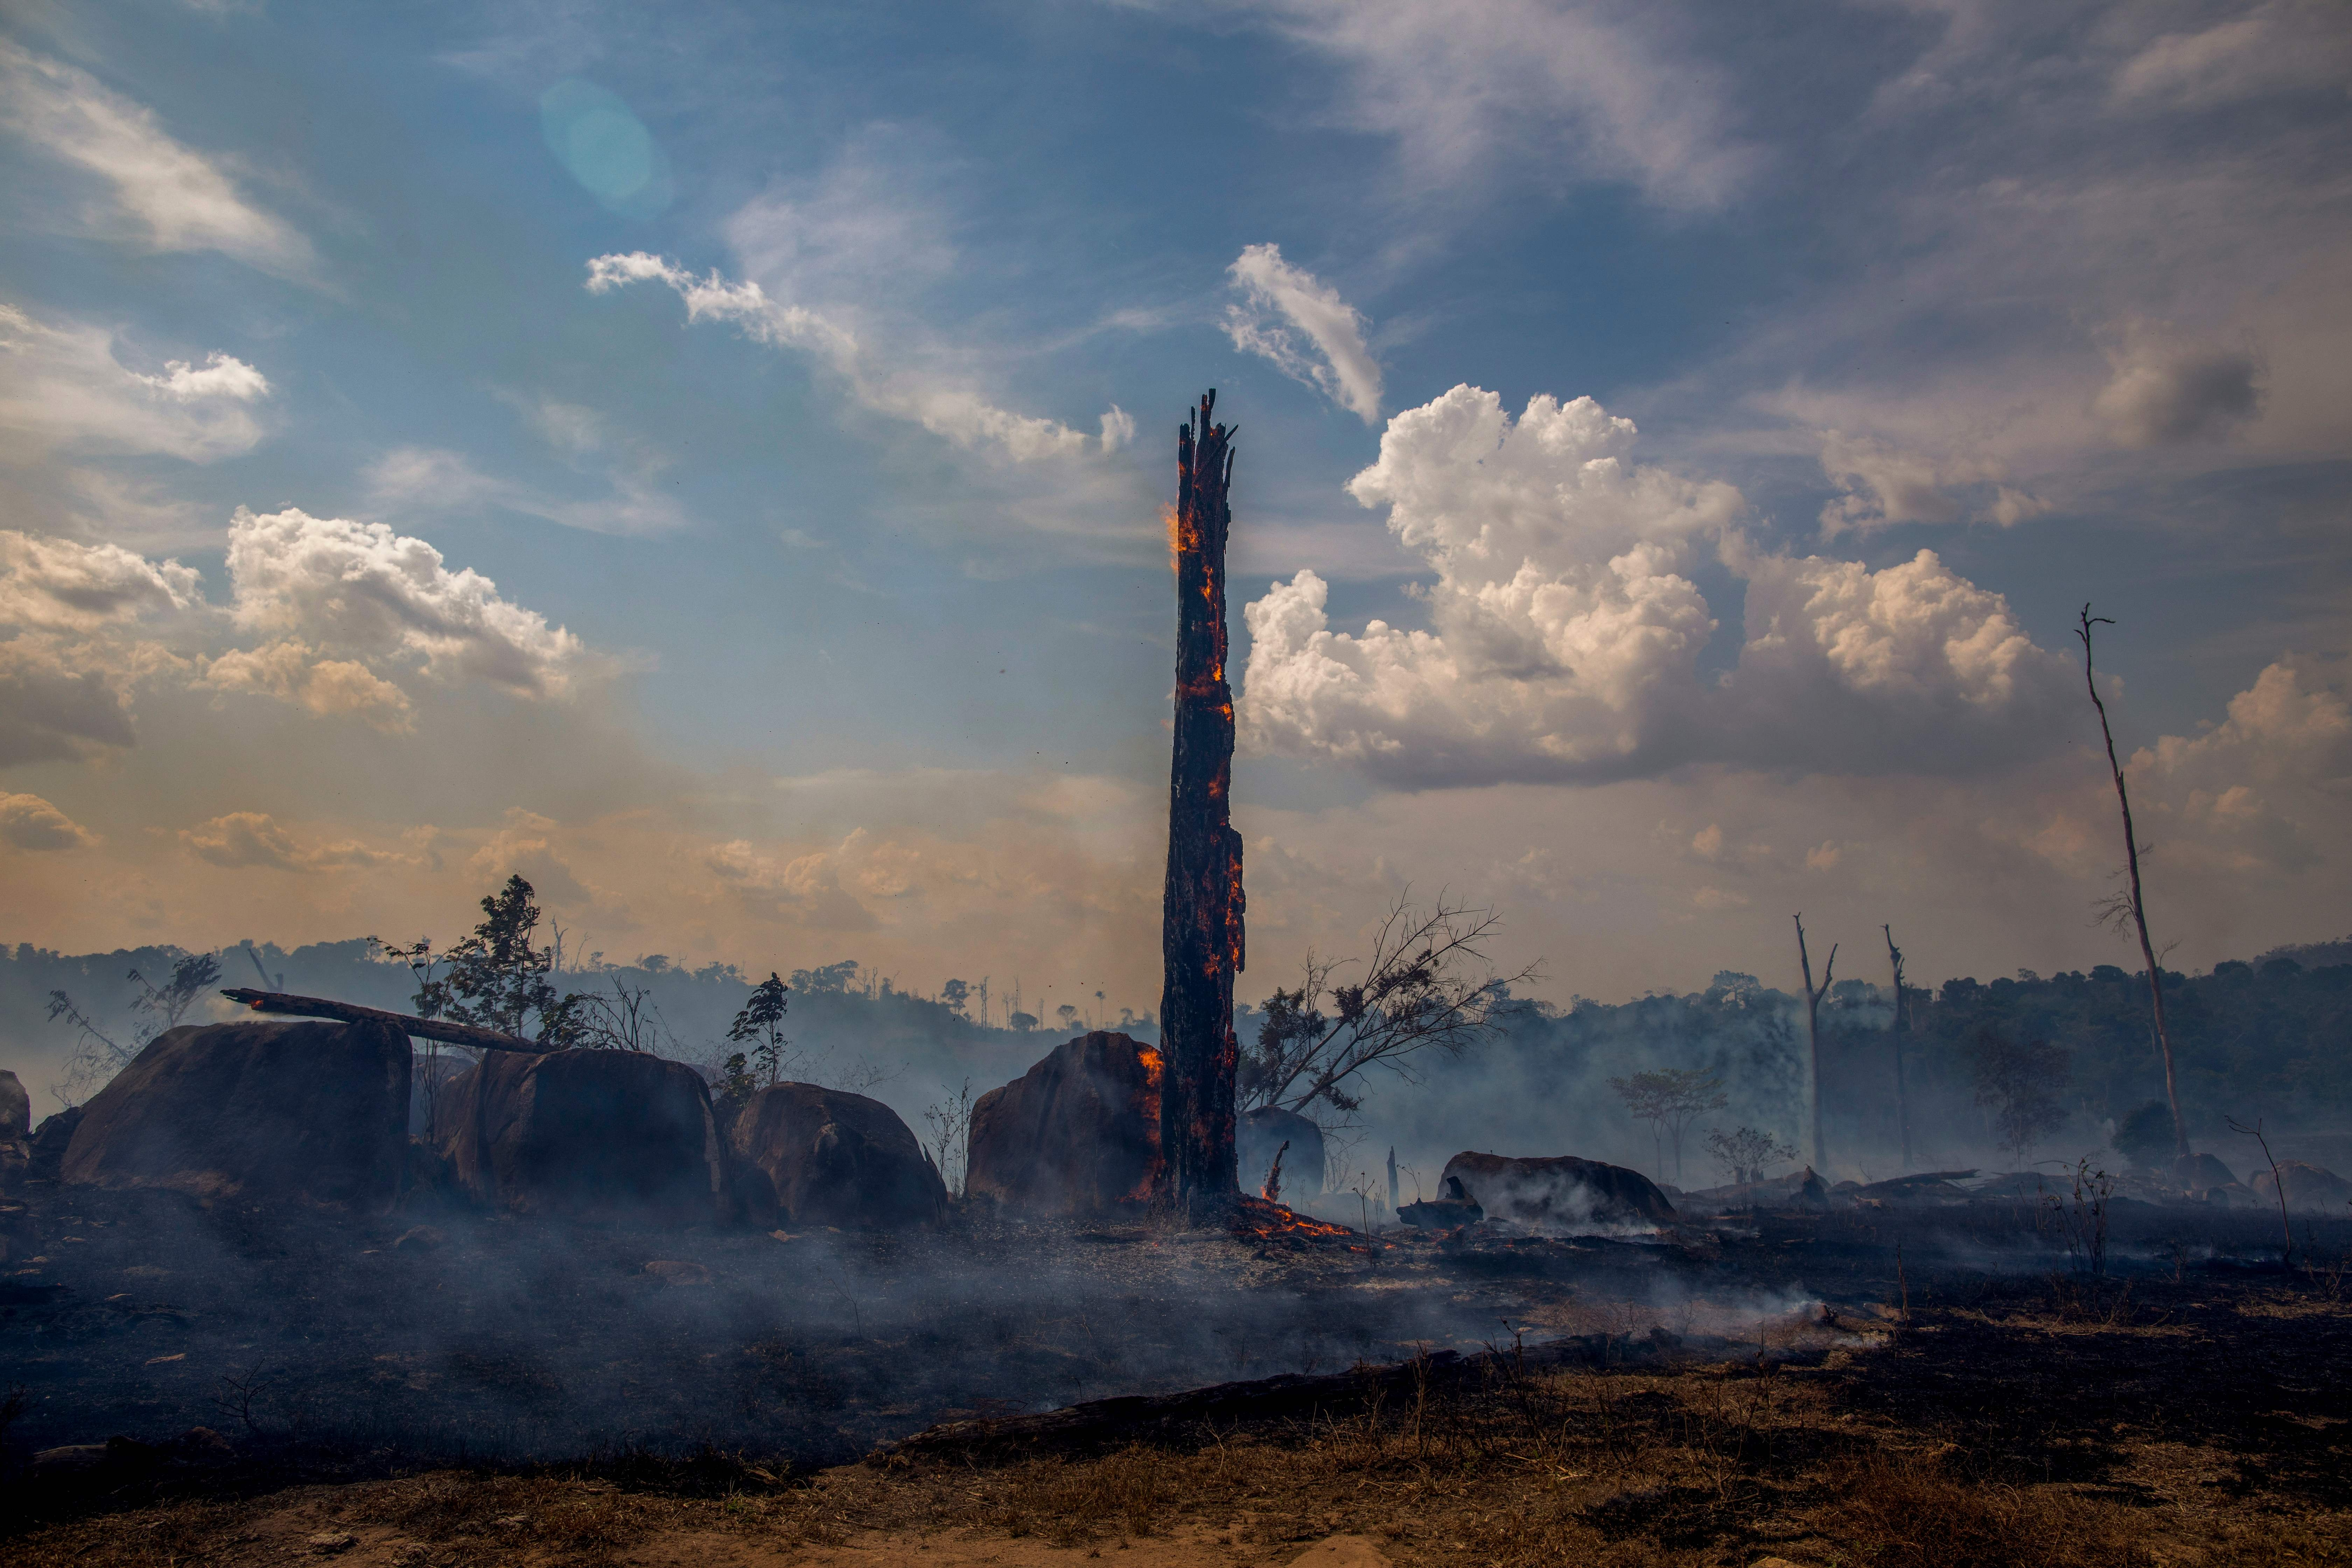 TOPSHOT - View of a burnt area of forest in Altamira, Para state, Brazil, in the Amazon basin, on August 27, 2019. - Brazil will accept foreign aid to help fight fires in the Amazon rainforest on the condition the Latin American country controls the money, the president's spokesman said Tuesday. (Photo by Joao LAET / AFP)        (Photo credit should read JOAO LAET/AFP/Getty Images)